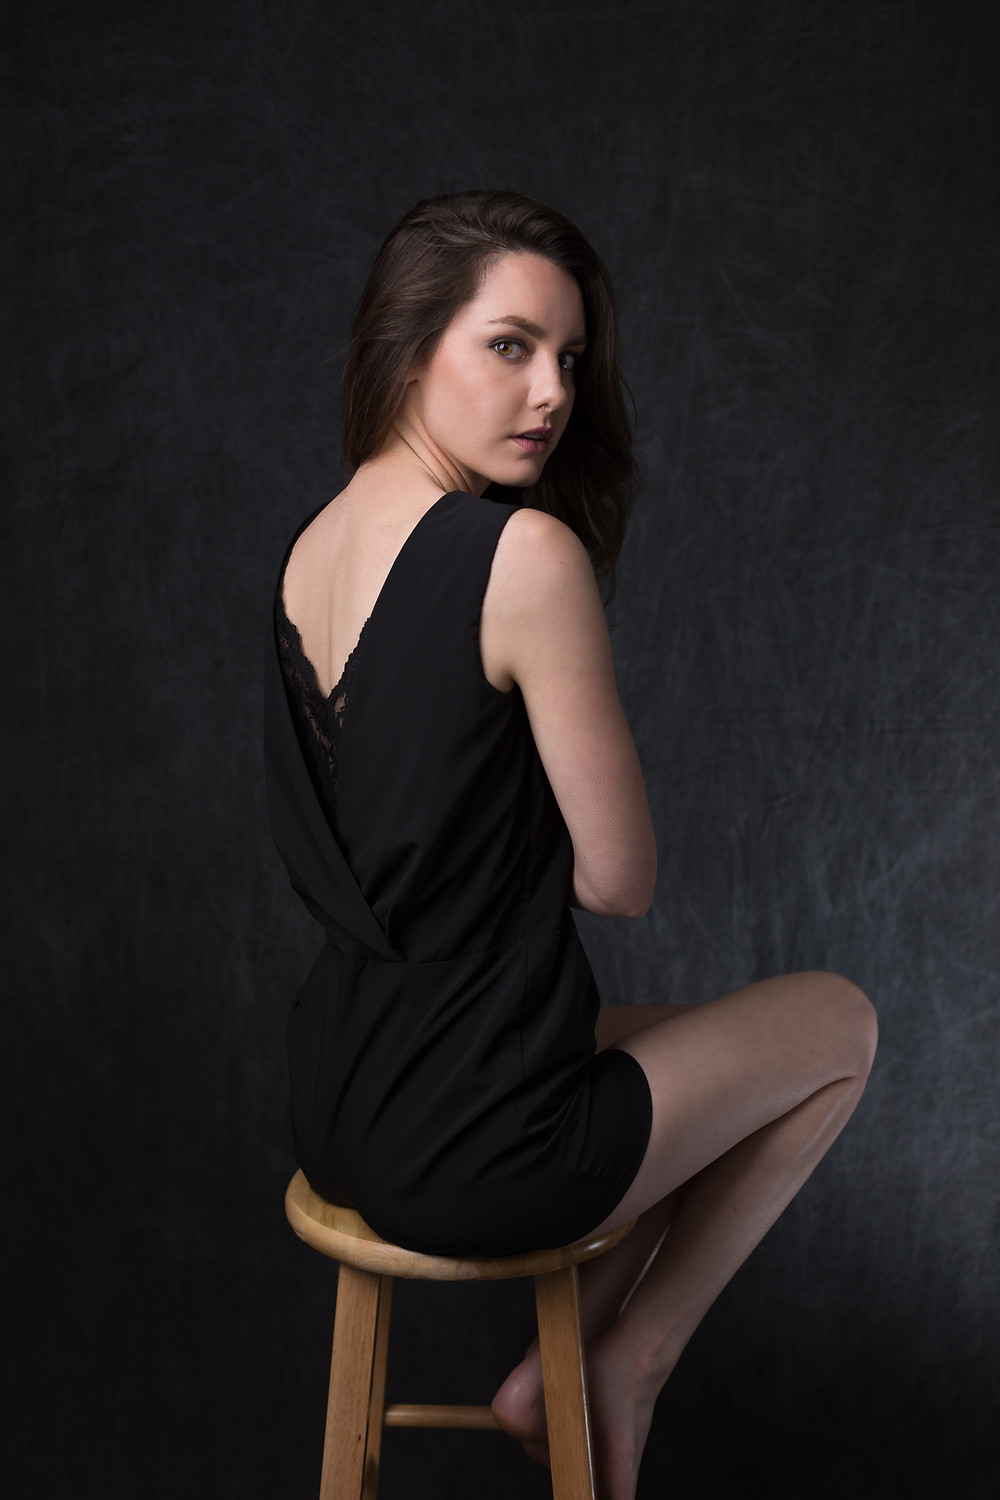 The model sitting on a stool during an editorial portrait session at my studio in San Jose.